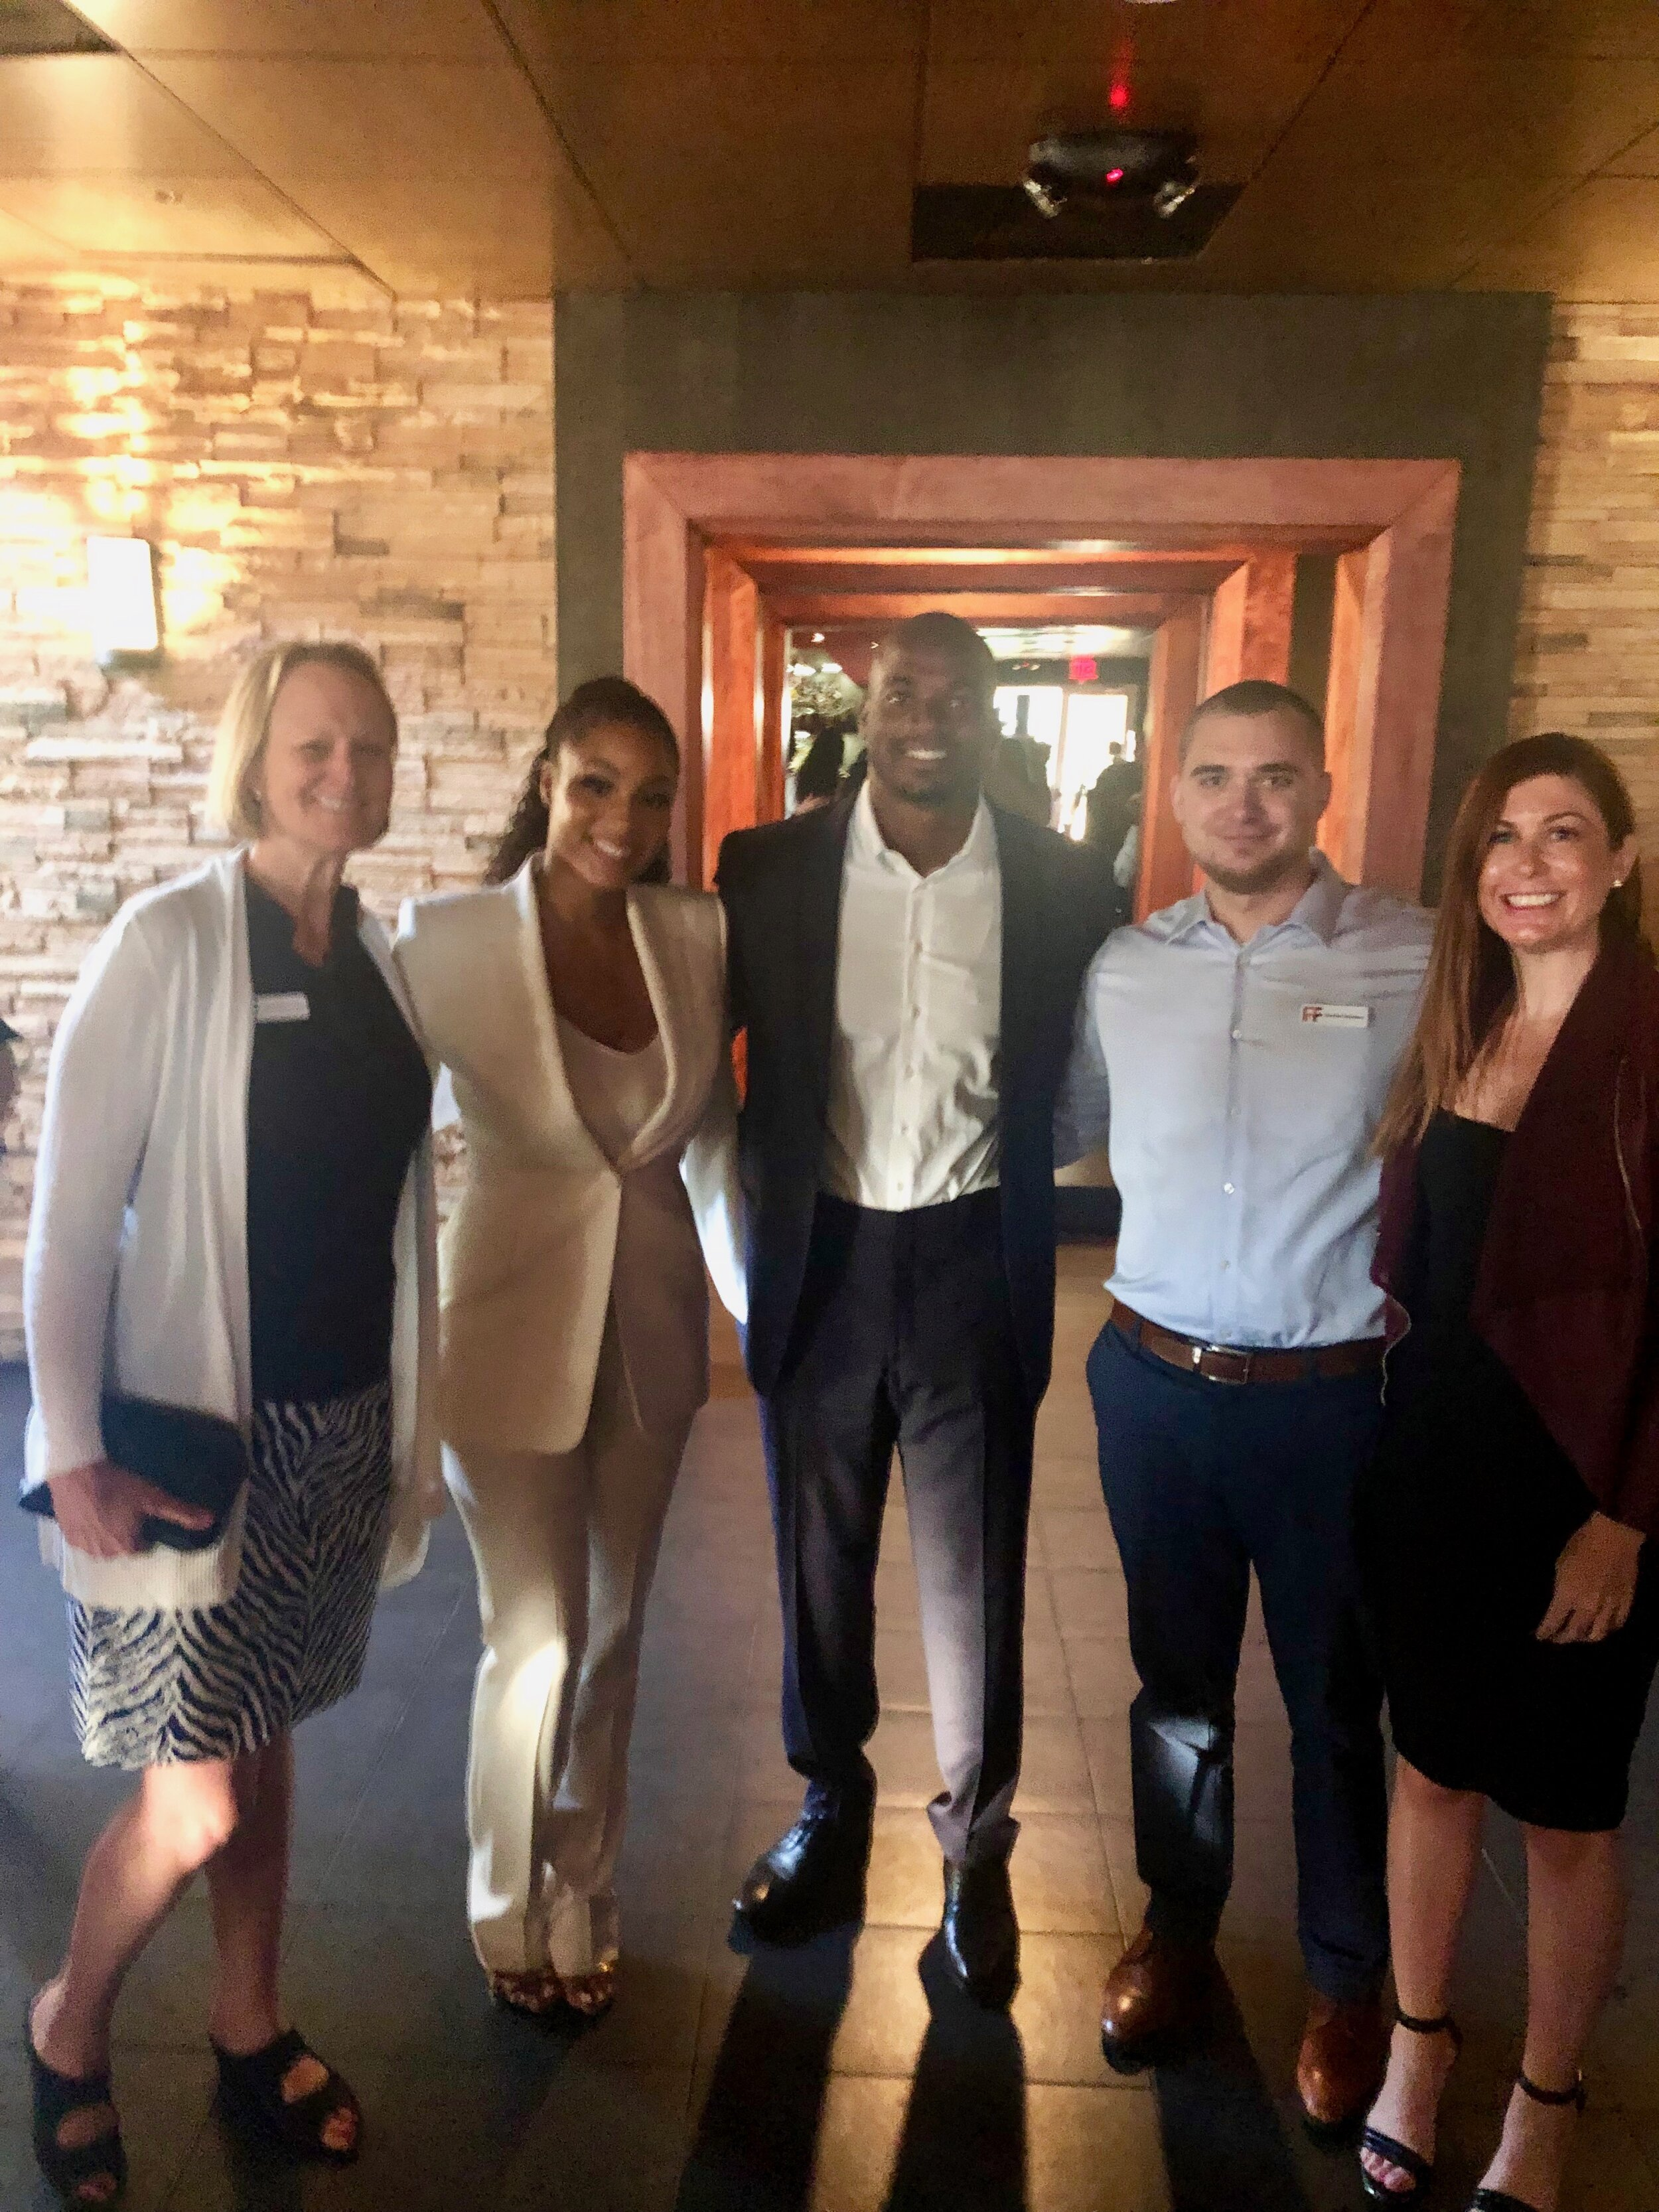 09-16-19 E & B with Adrian & Ashley Peterson and Lauren Renschler.jpeg